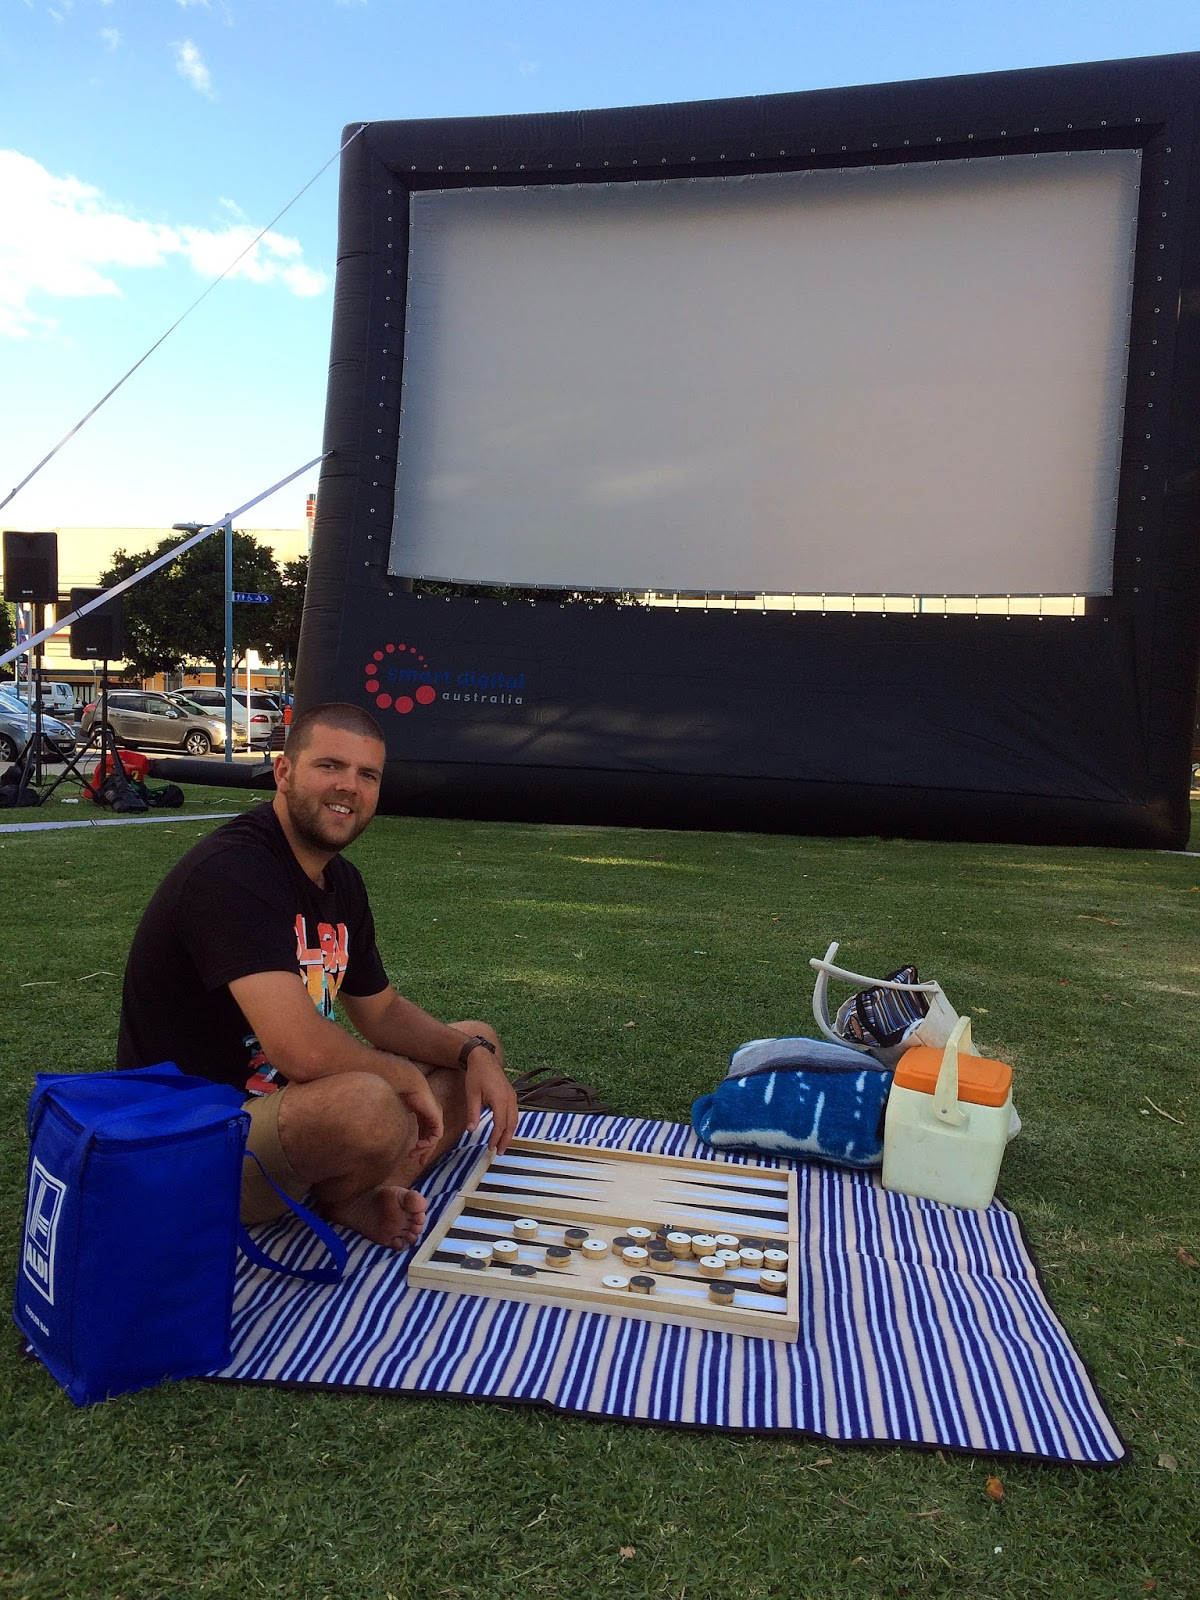 Port Macquarie Hastings Council Moonlight Cinema